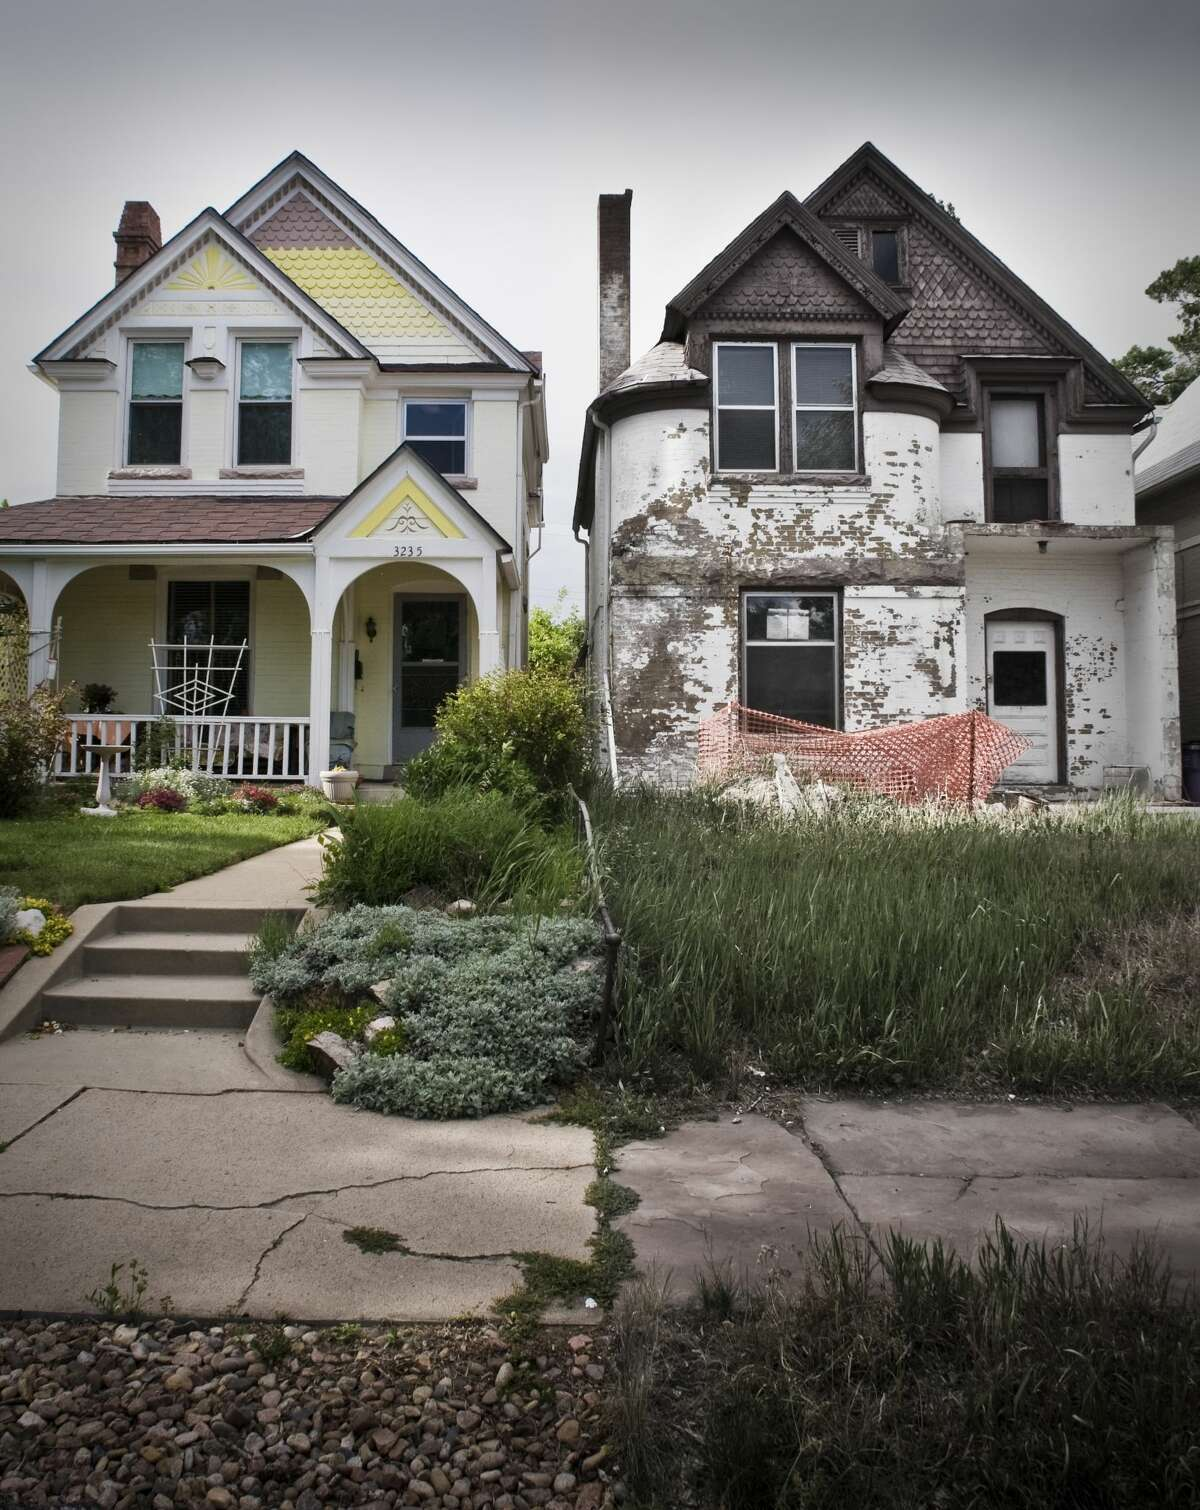 1. You always see a home's potential rather than its flaws.